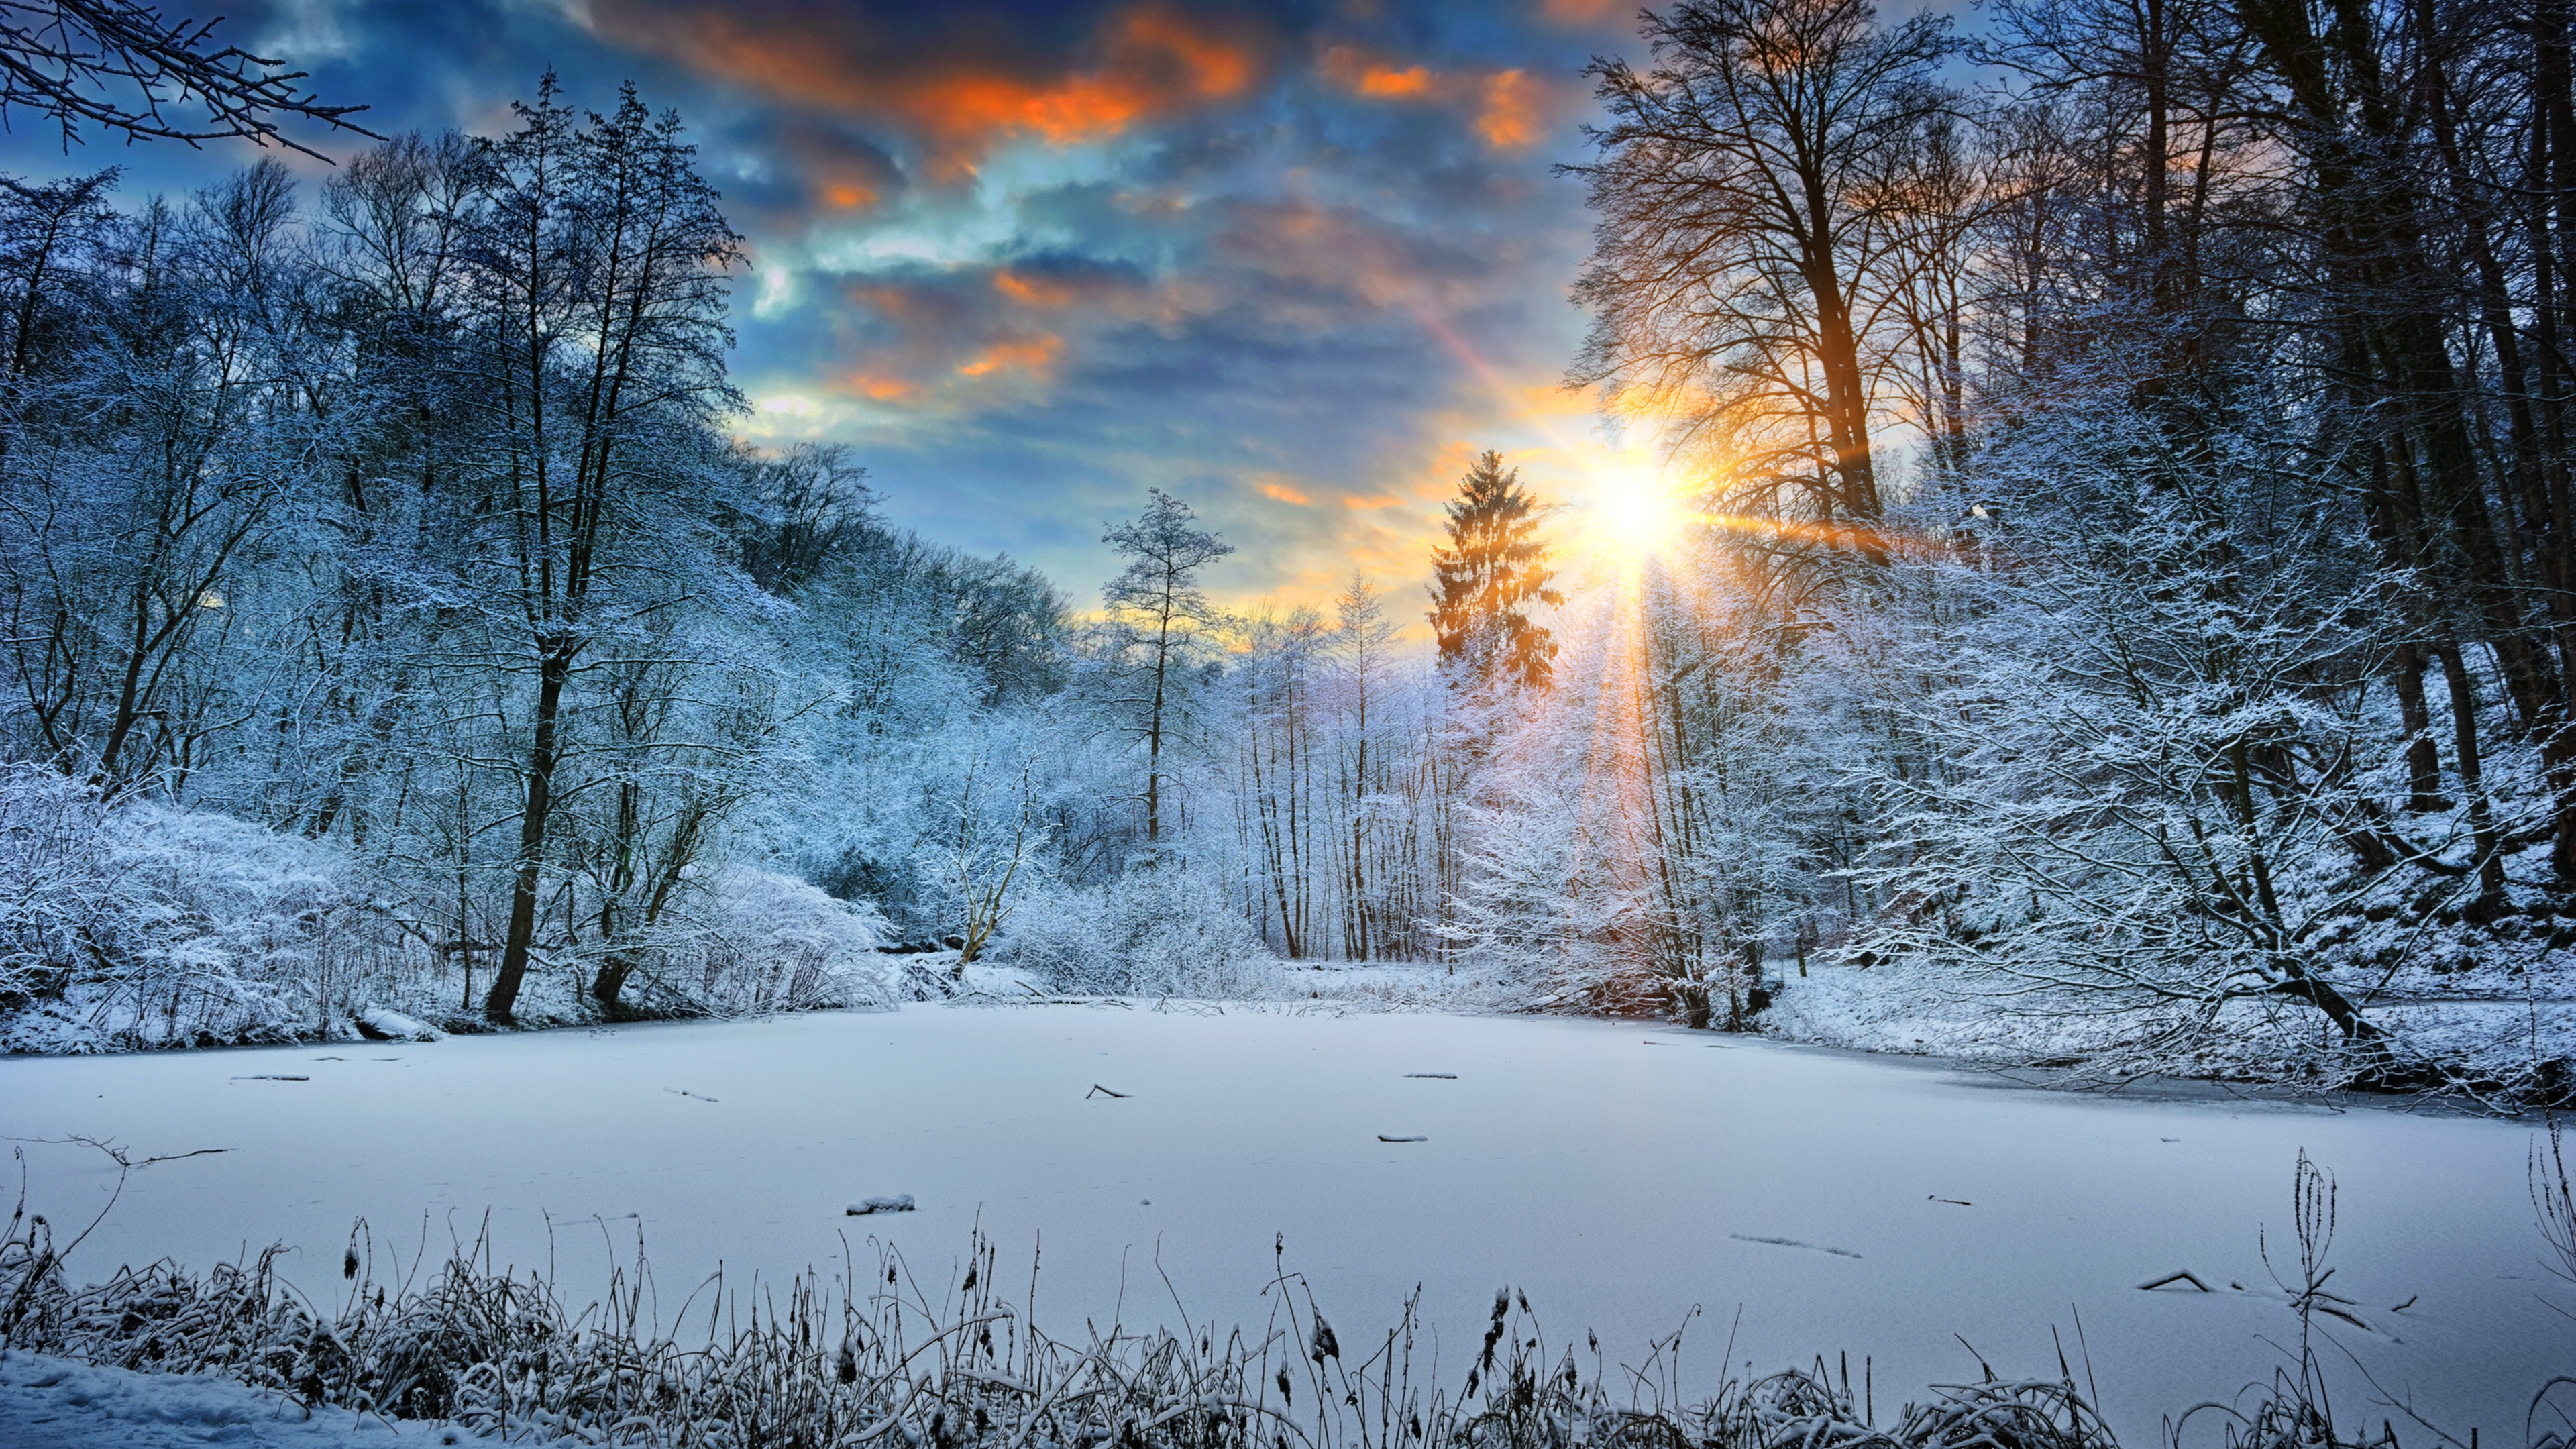 Wallpaper 4k Sunbeams Landscape Snow In Winter Trees 4k 4k Wallpapers Hd Wallpapers Landscape Wallpapers Nature Wallpapers Snow Wallpapers Sunbeam Wallpapers Trees Wallpapers Winter Wallpapers